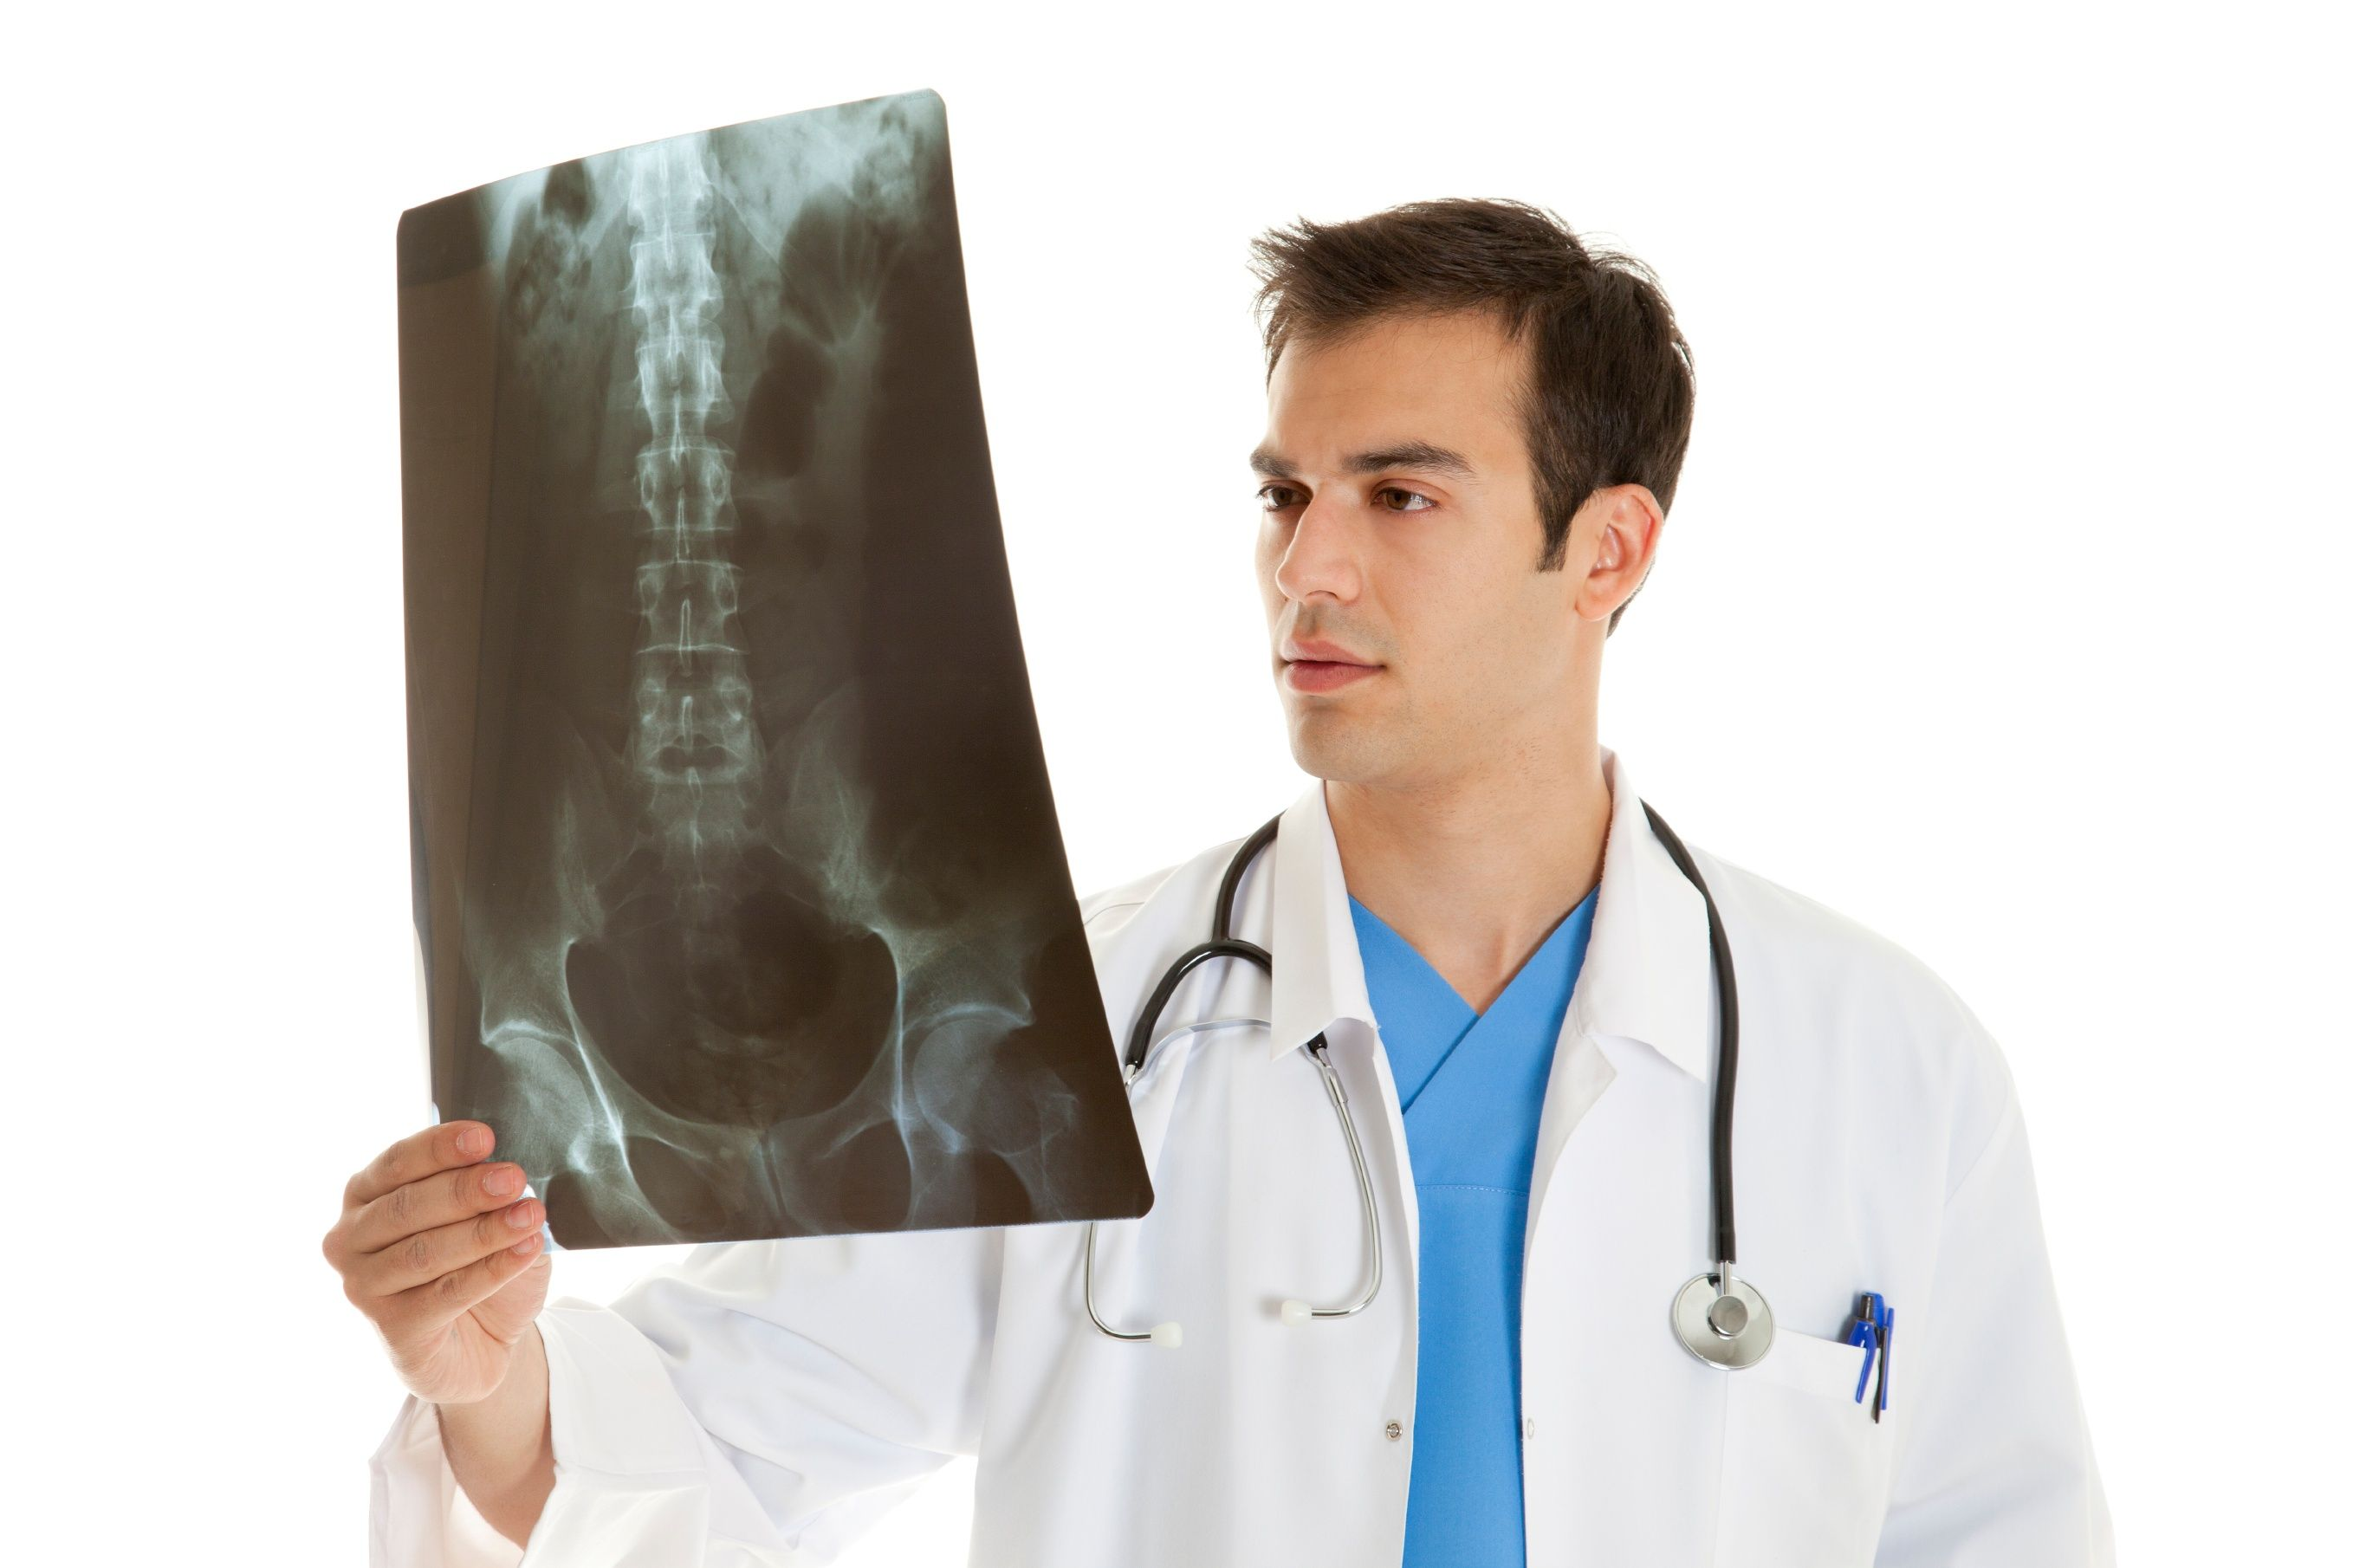 Atlanta Chiropractor going over x-rays with a patient